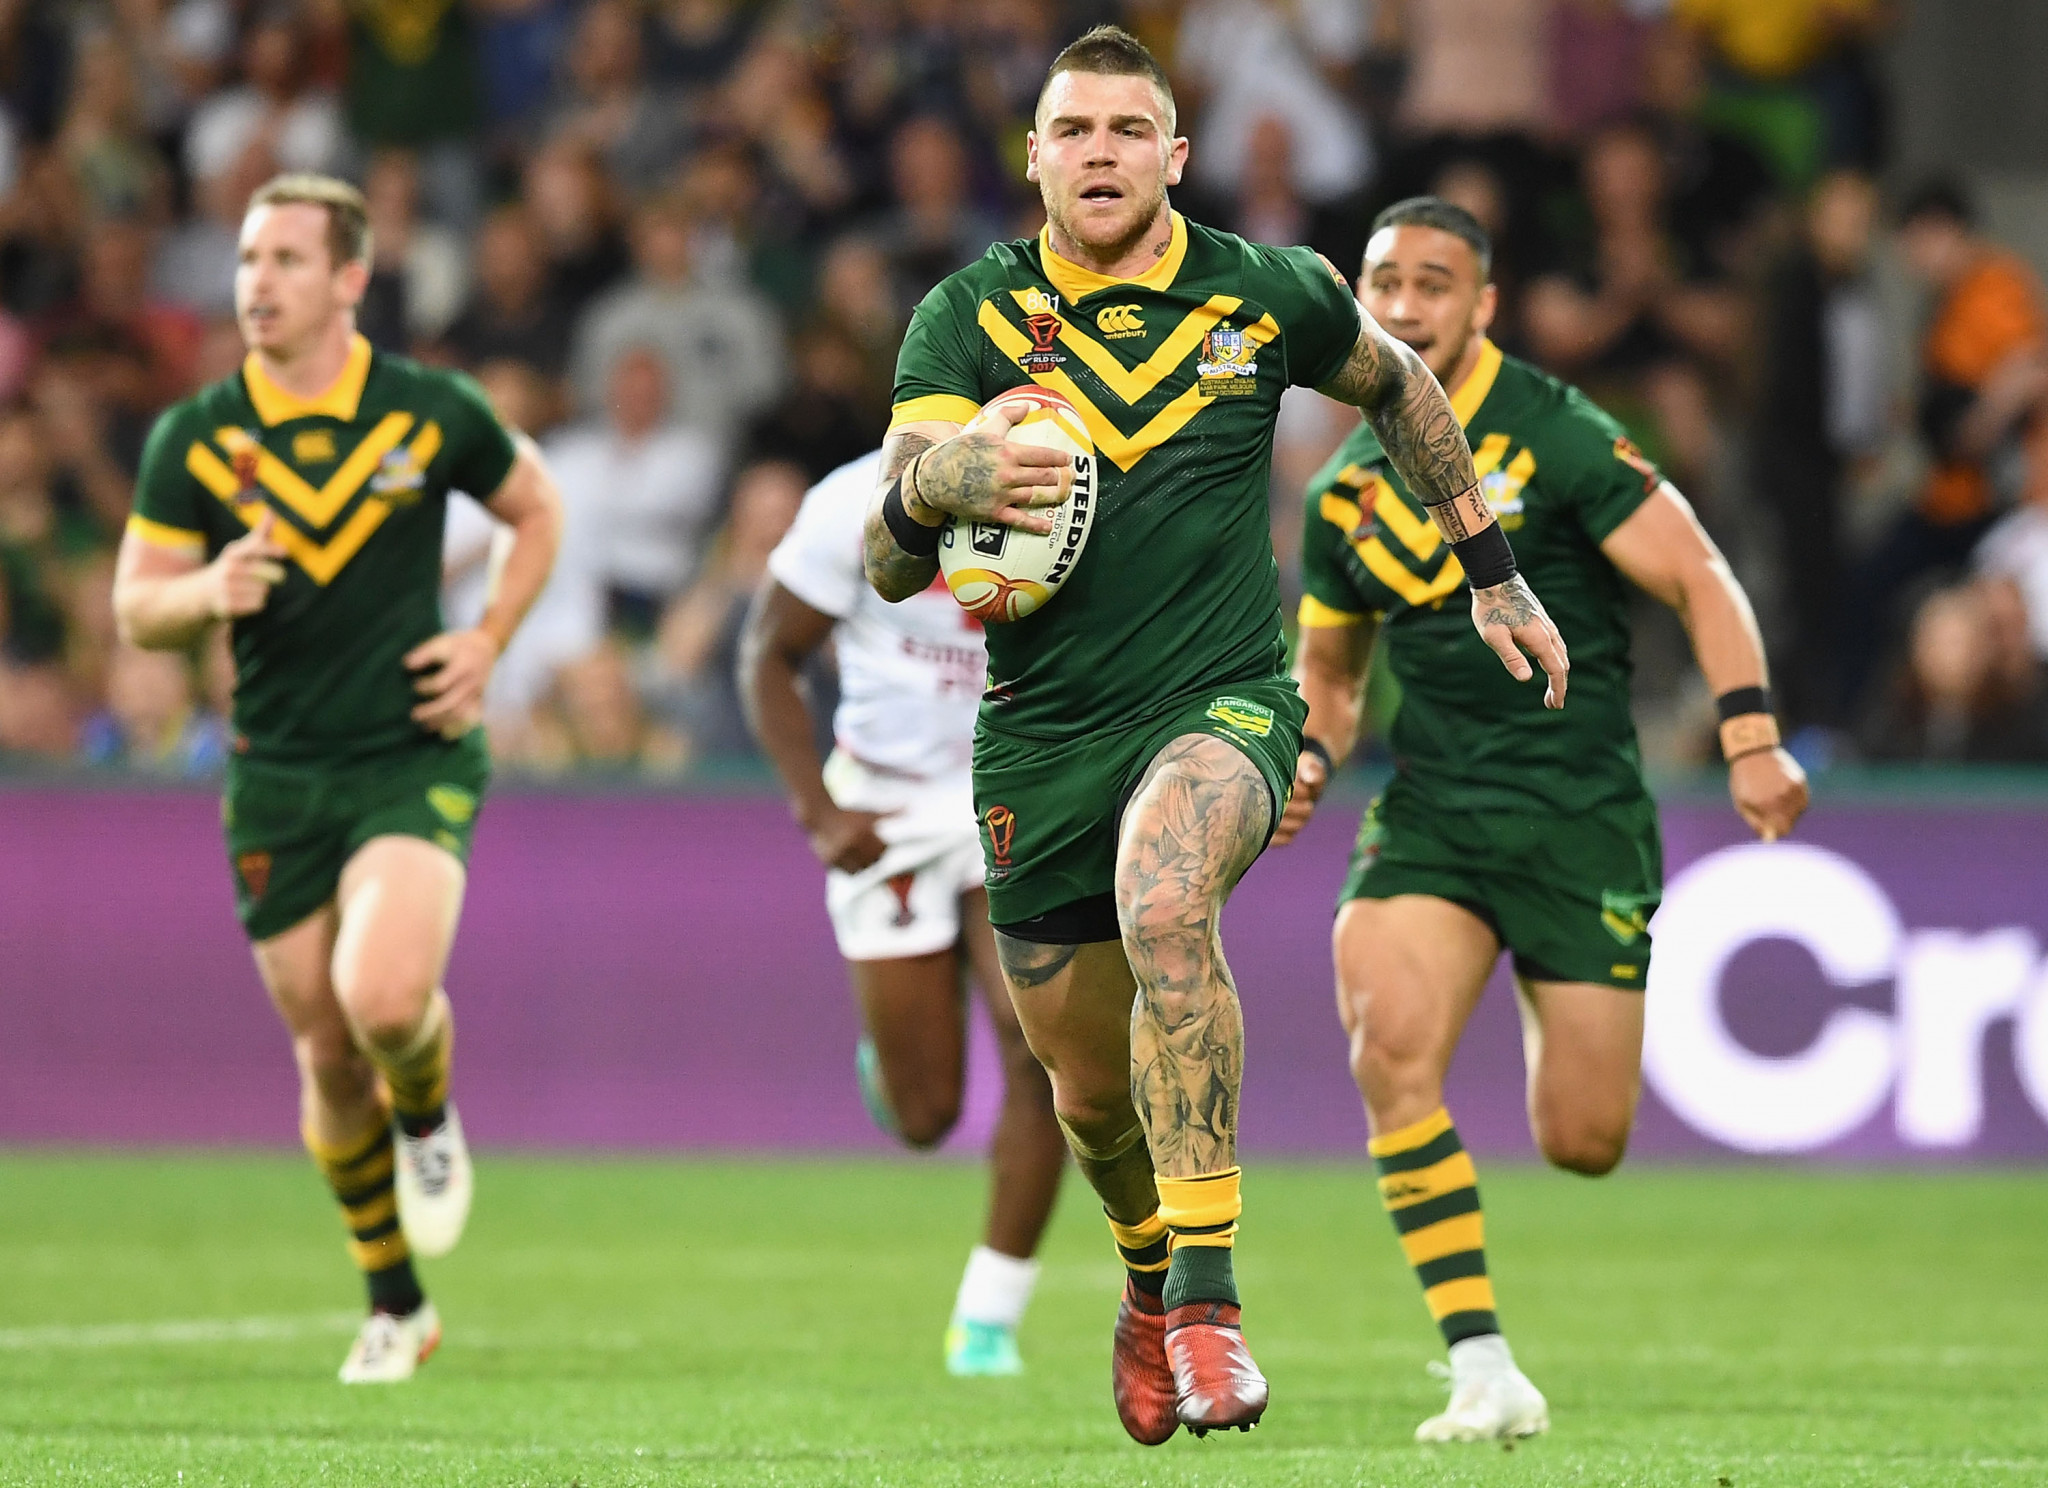 Josh Dugan scored a last-minute try to seal victory ©Getty Images